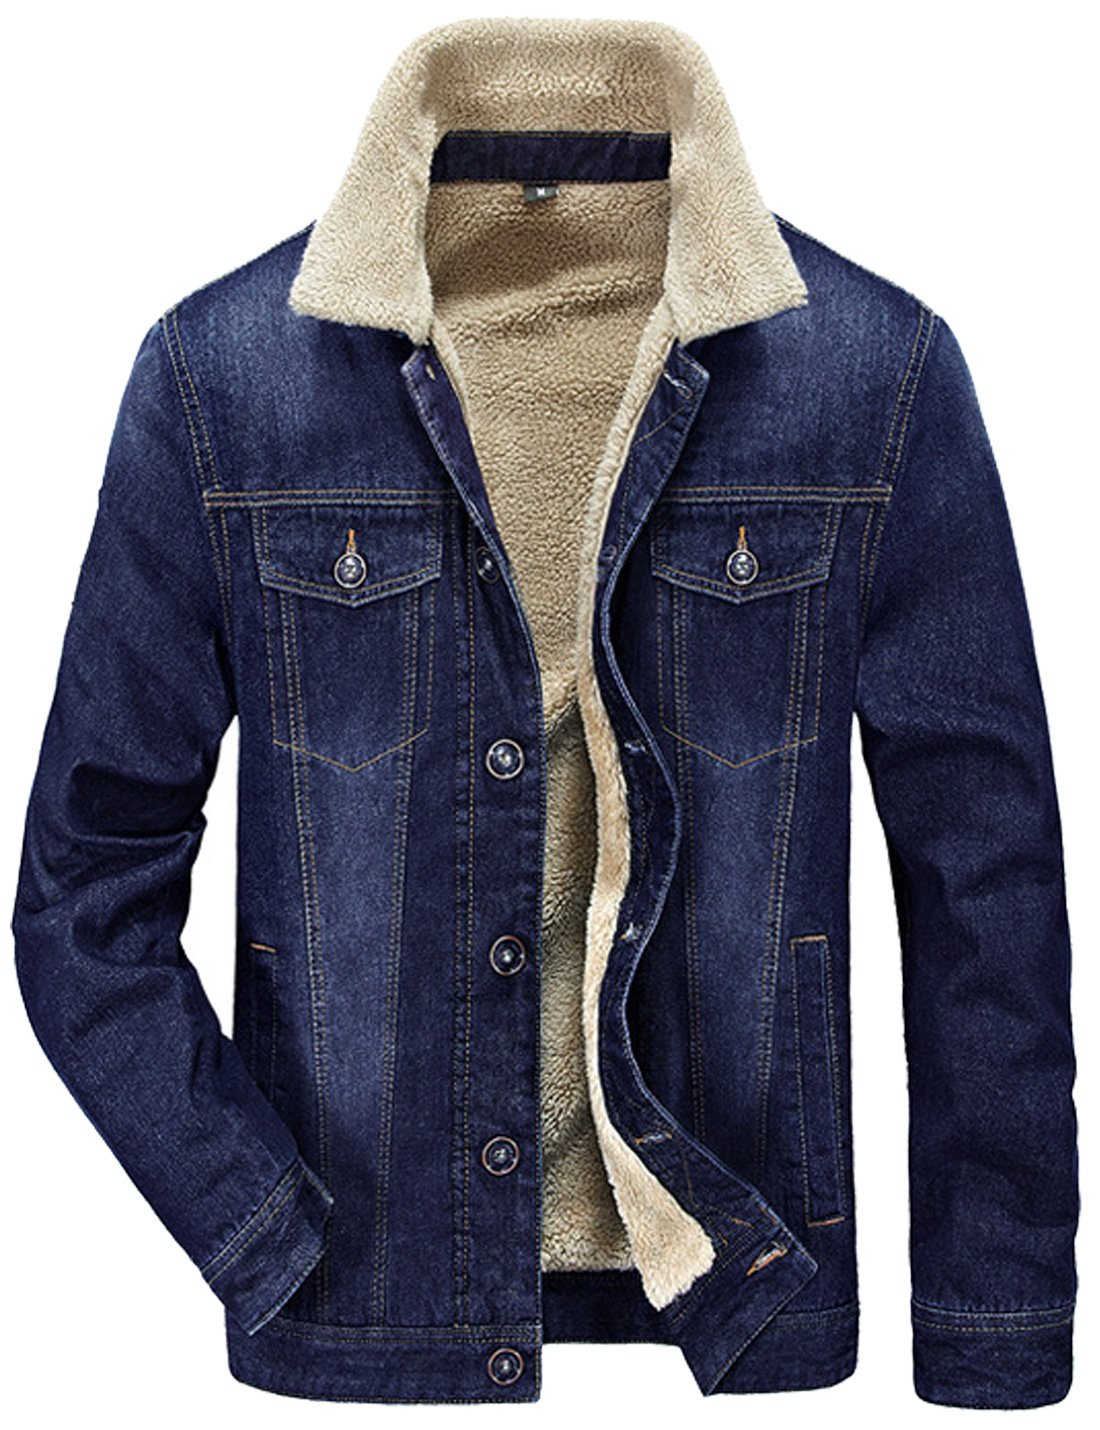 Tanming Men's Winter Casual Lined With Cashmere Warm Denim Jacket (Large, Blue)